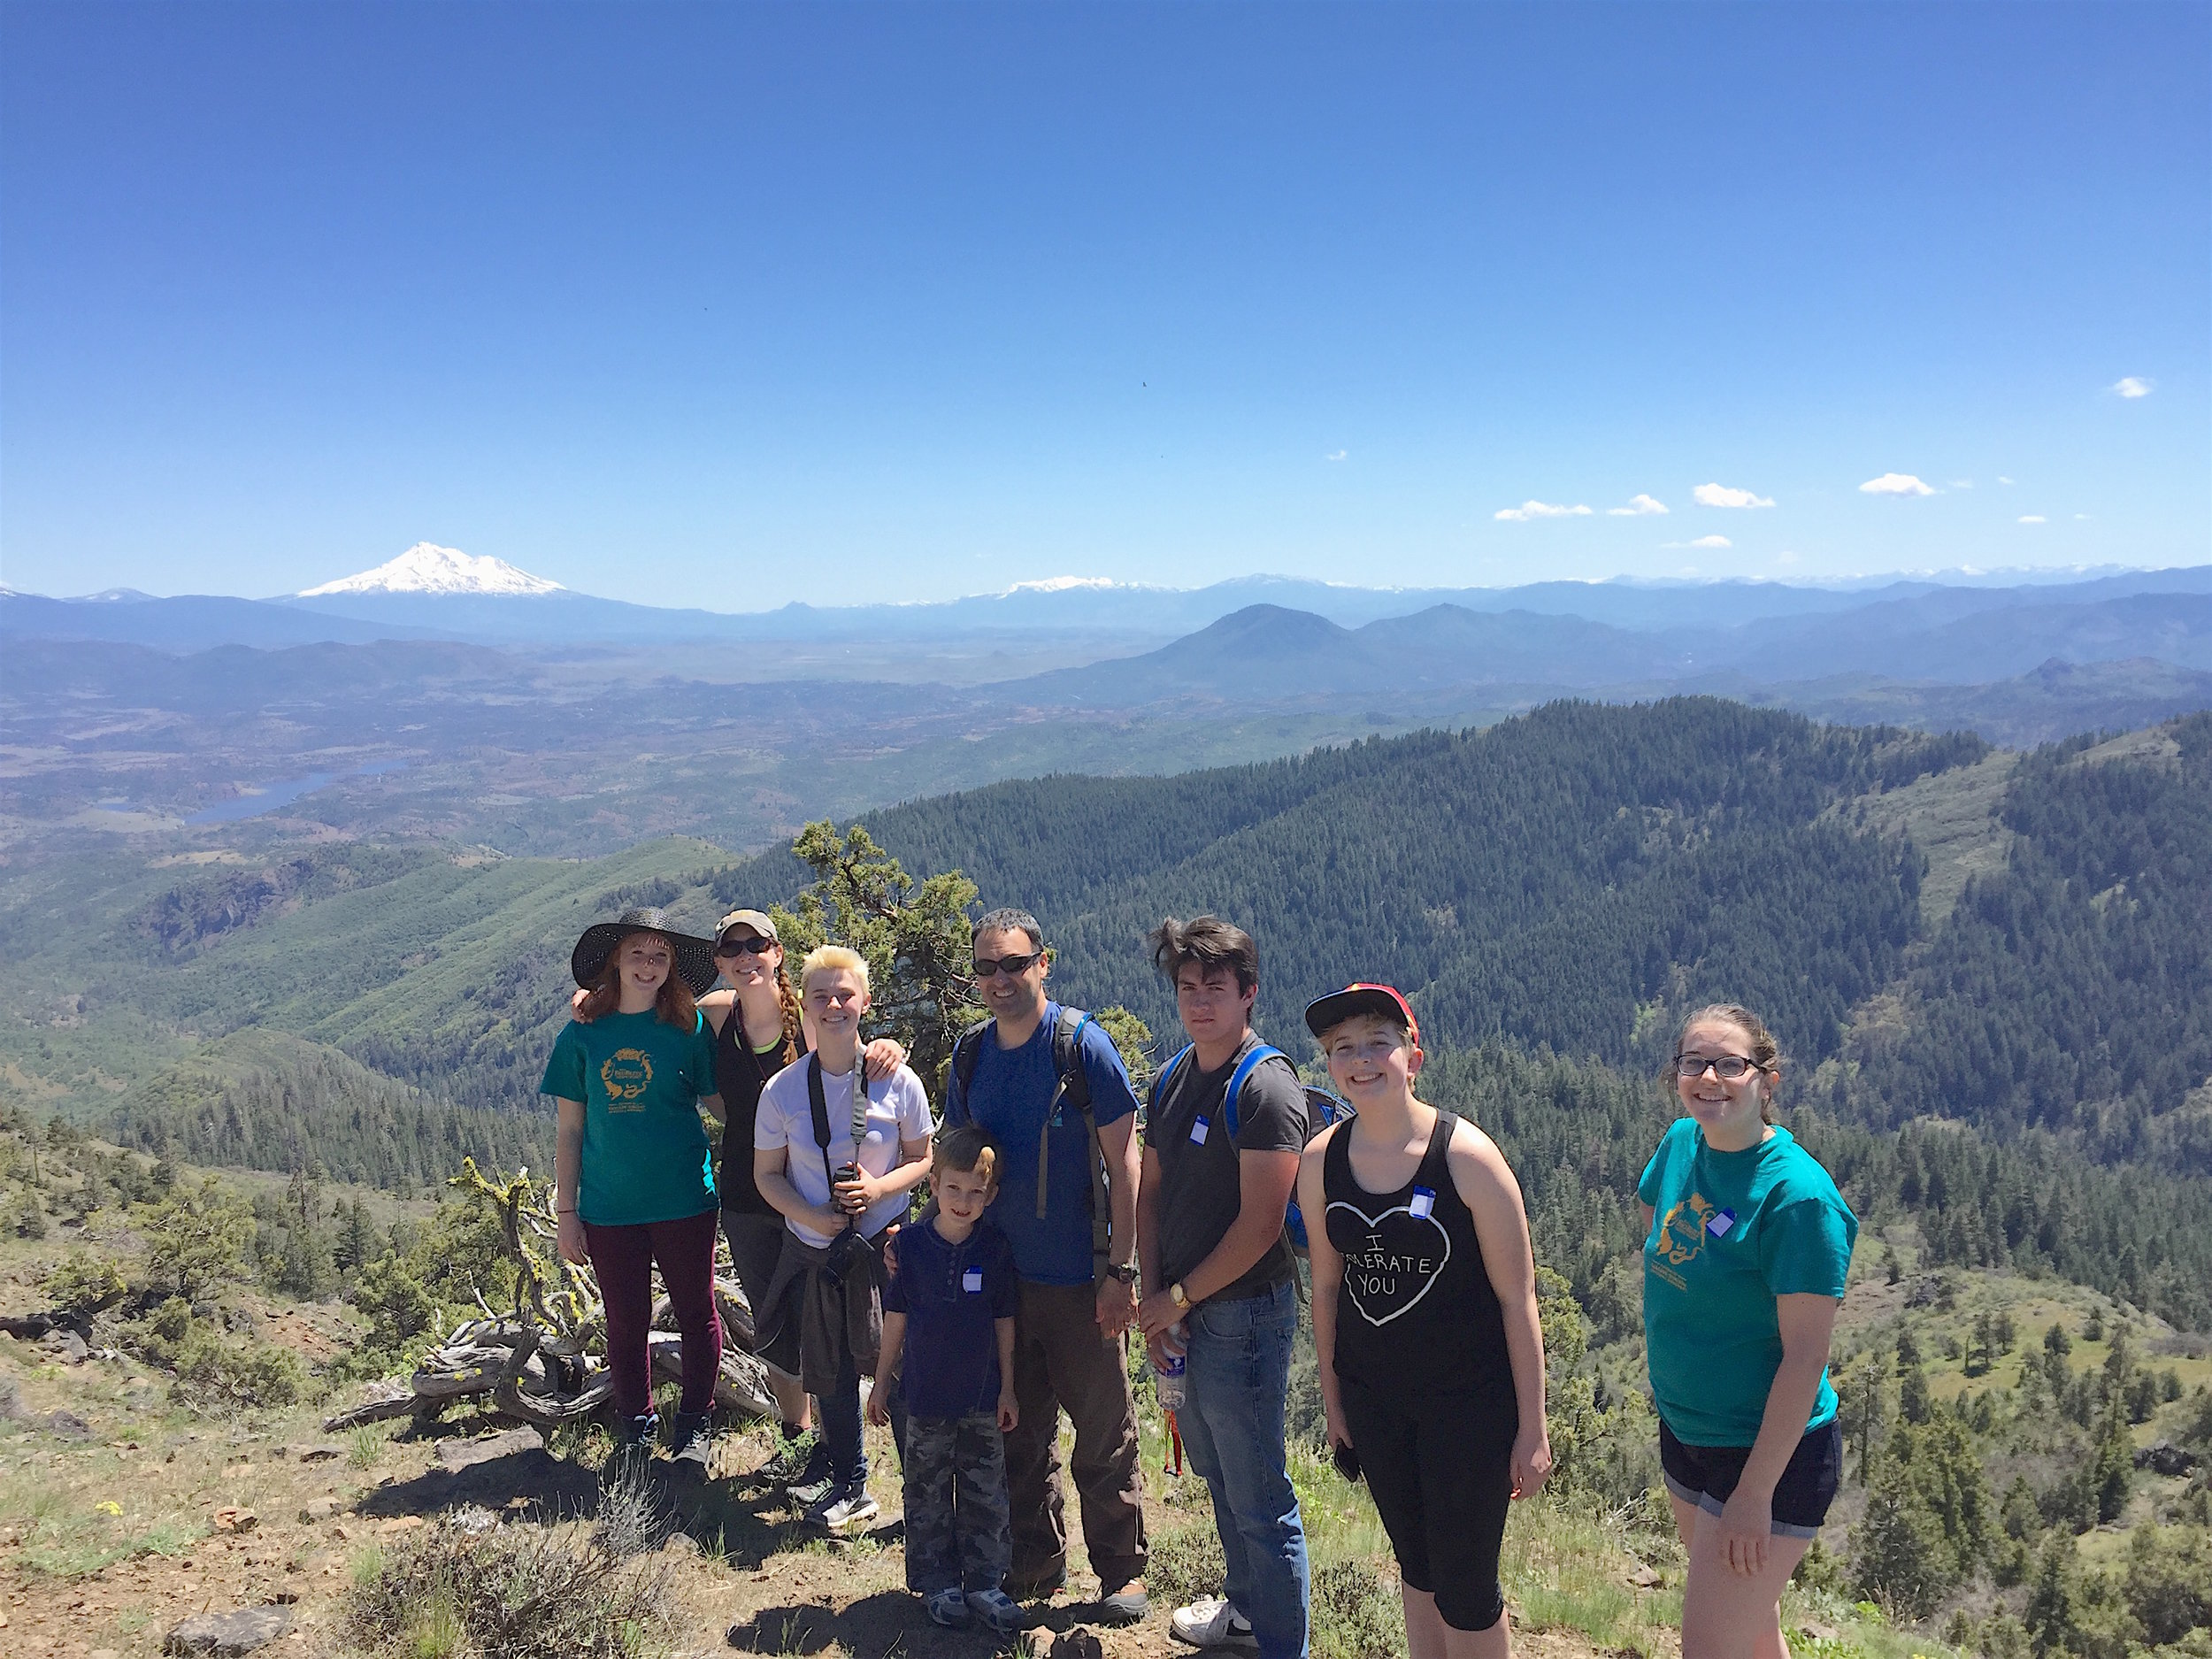 BioBlitz 2017 - Crater Renaissance Academy participants at Boccard Point, with Mt. Shasta Vies. Caroline Burdick photo.